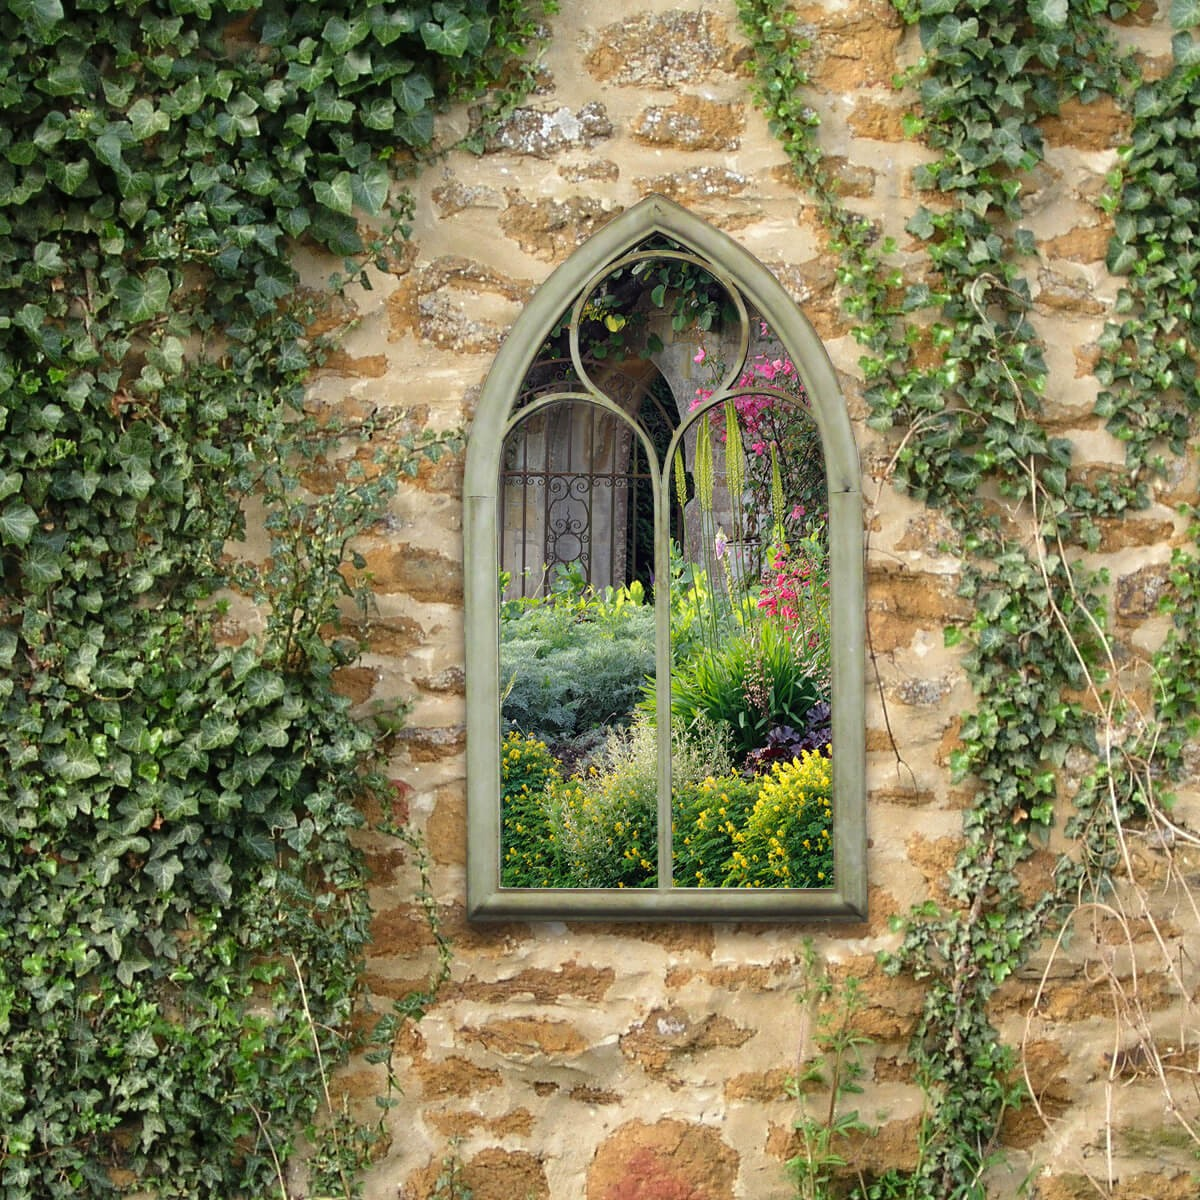 Mirror In Garden: 10 Garden Design Ideas For Small Gardens